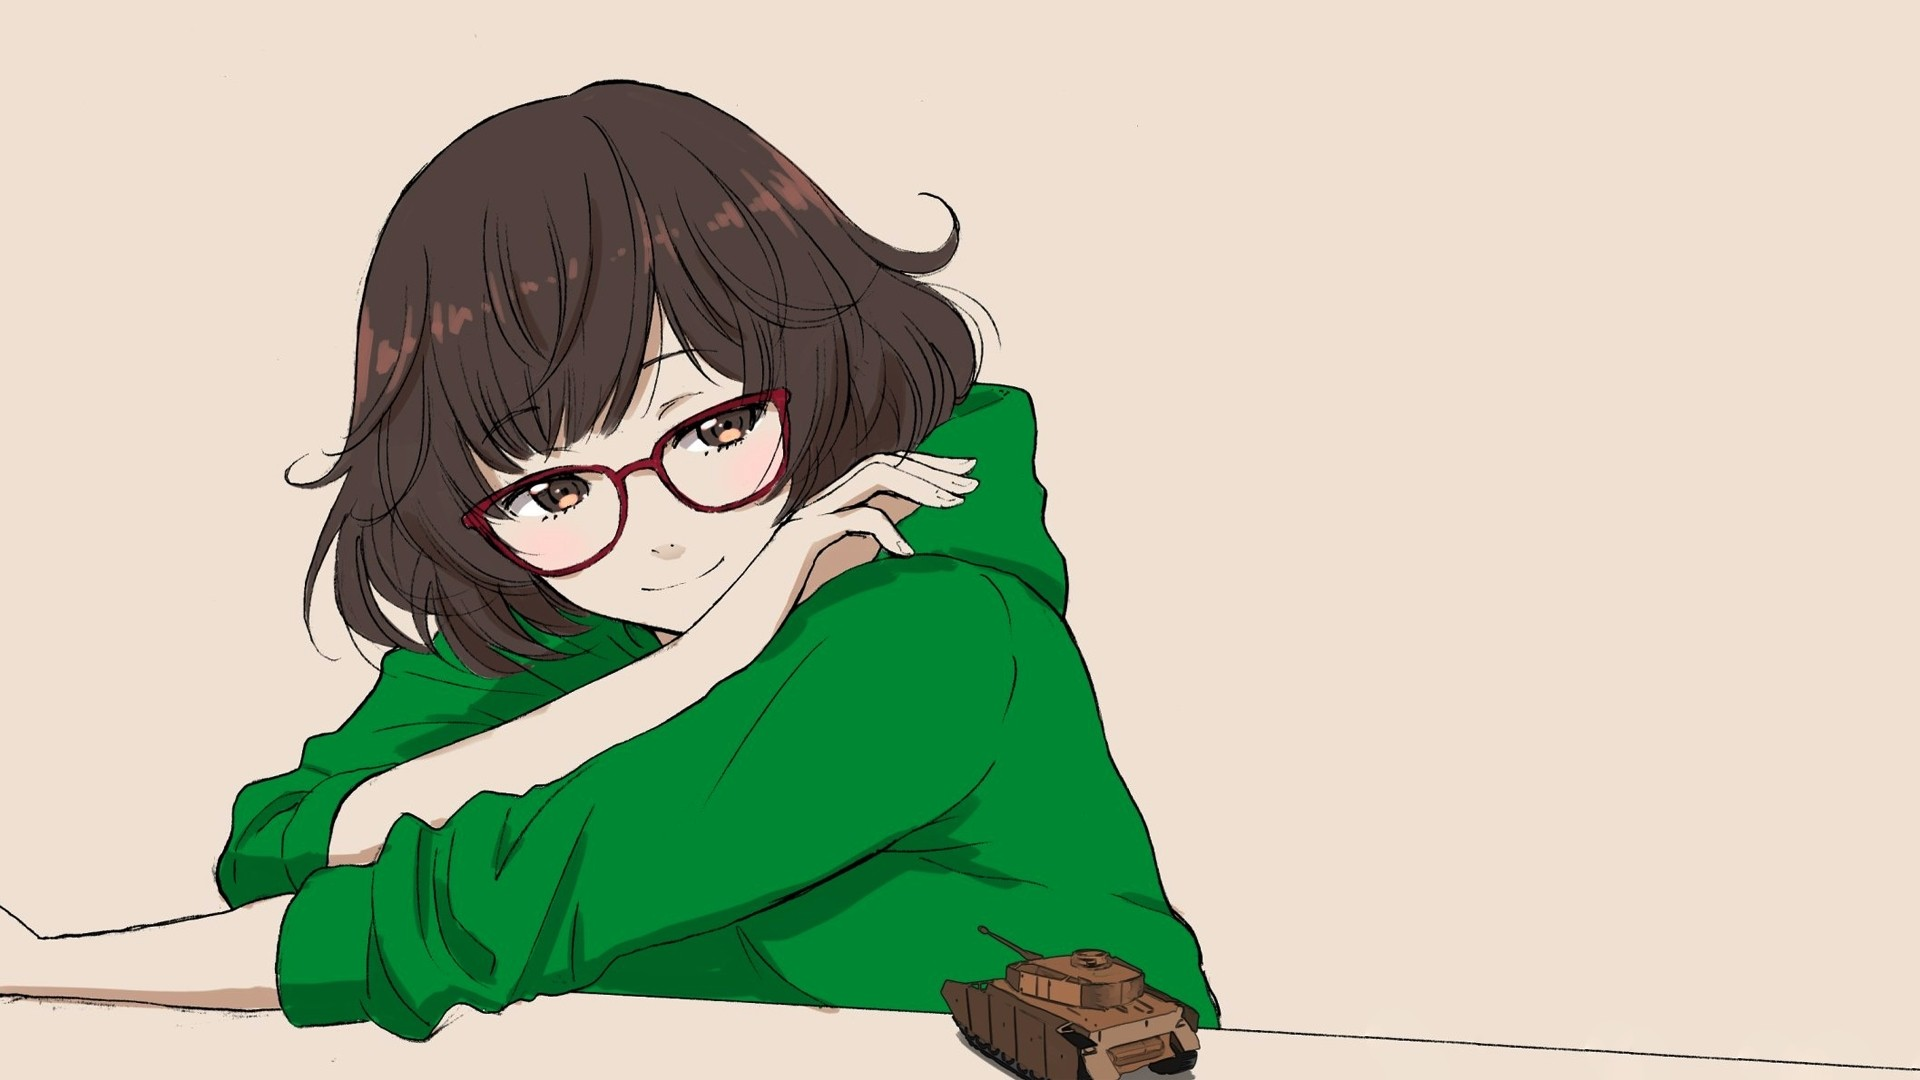 Anime Girl With Glasses hd wallpaper download